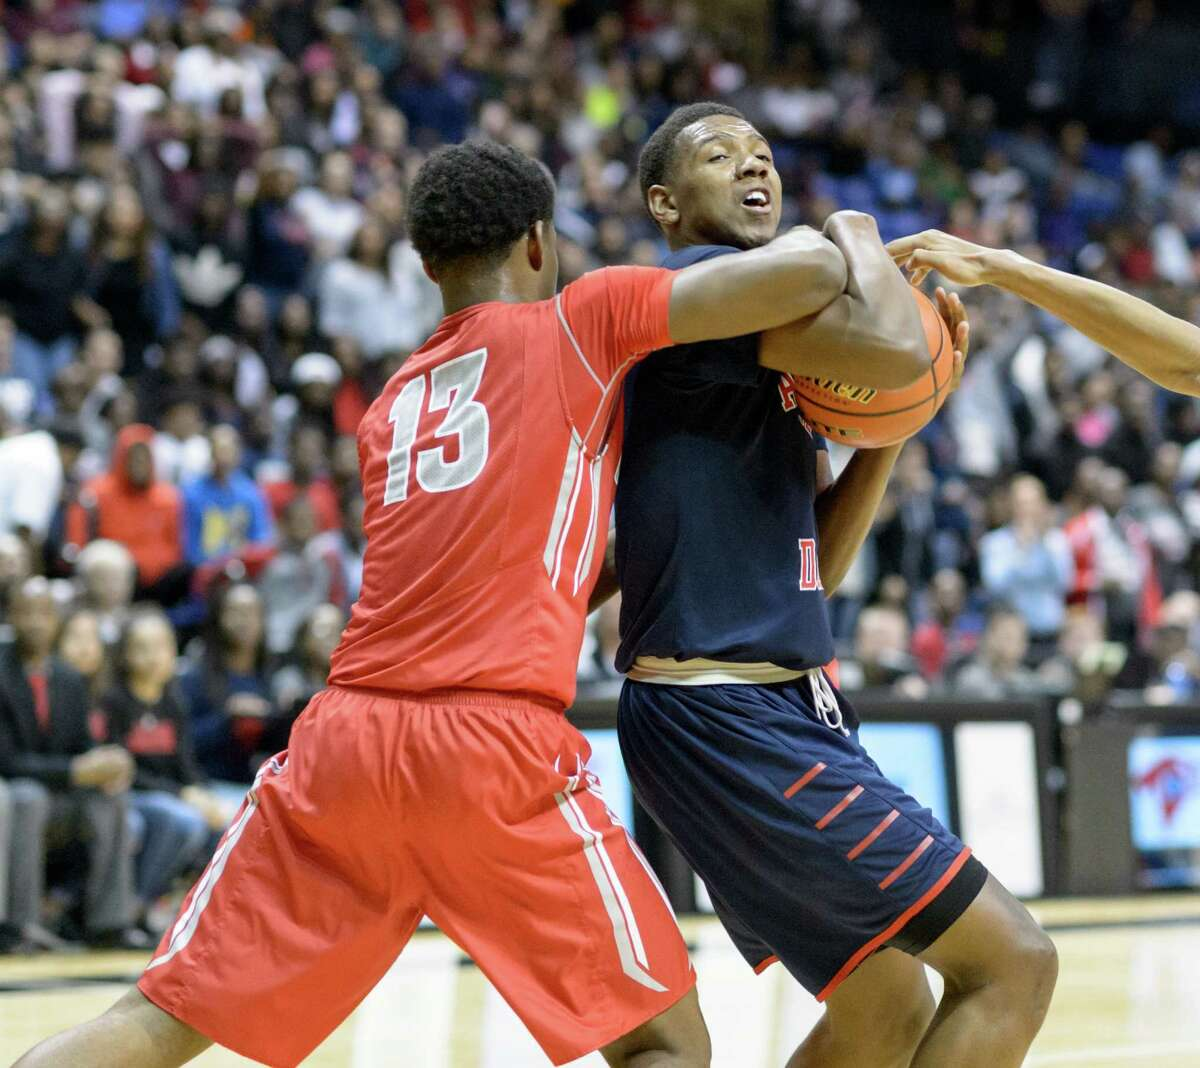 Royce Hamm (1) of the Davis Falcons battles Jared Garcia (13) of the Cy Lakes Spartans for the ball in the first half in high school basketball's Class 6A Regional Quarterfinals on Tuesday, March 1, 2016 at the Berry Center.